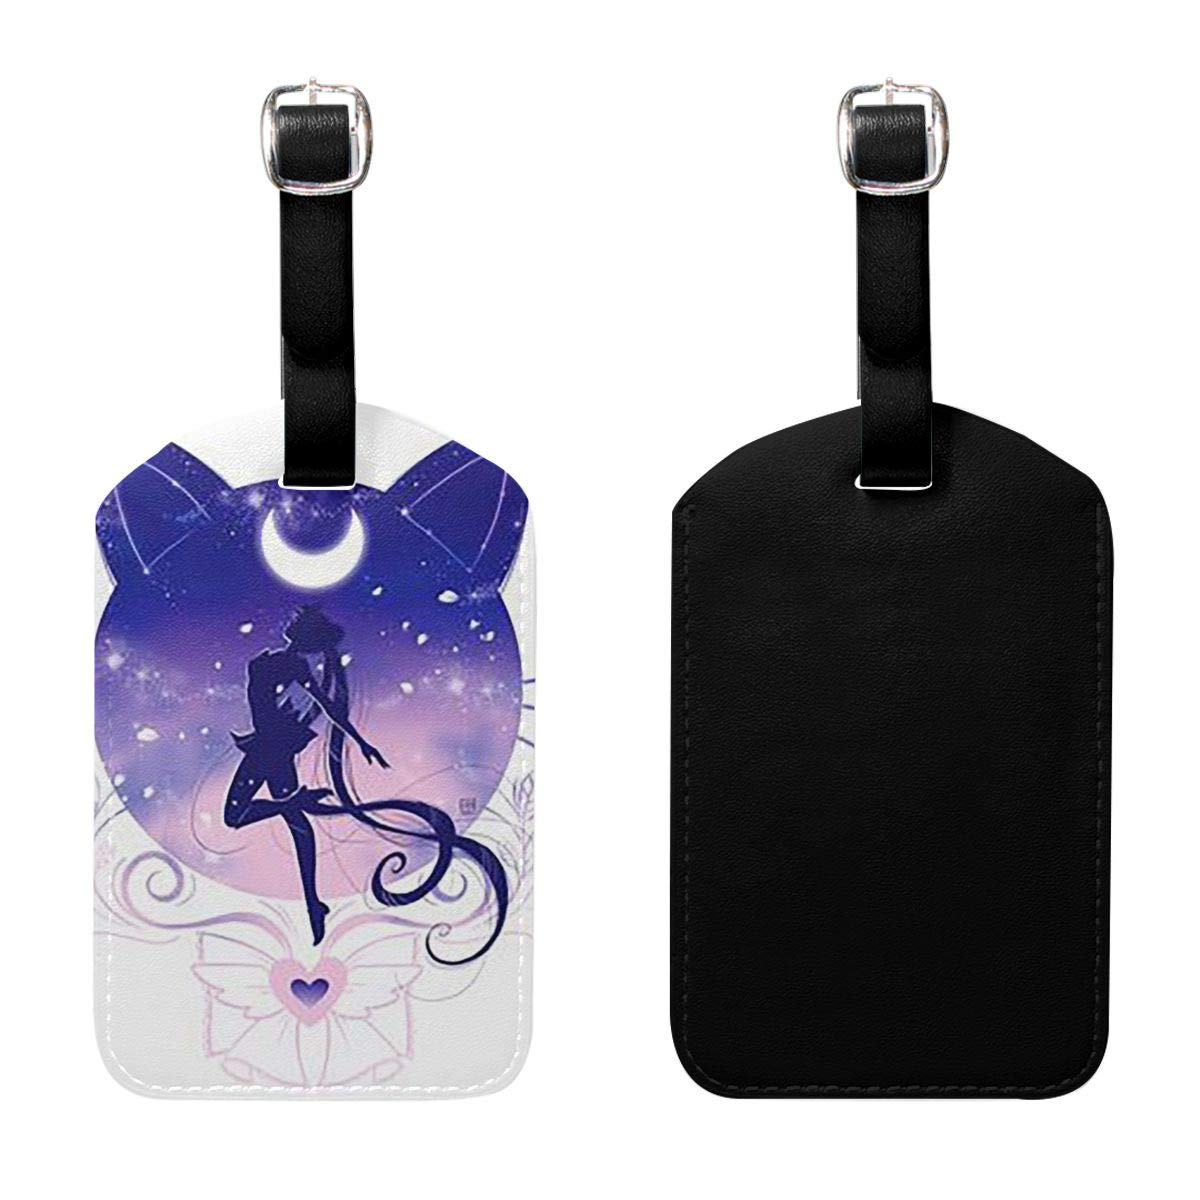 PU Leather Luggage Tags Sailor Moon in Cat Background Suitcase Labels Bag Adjustable Leather Strap Travel Accessories Set of 2